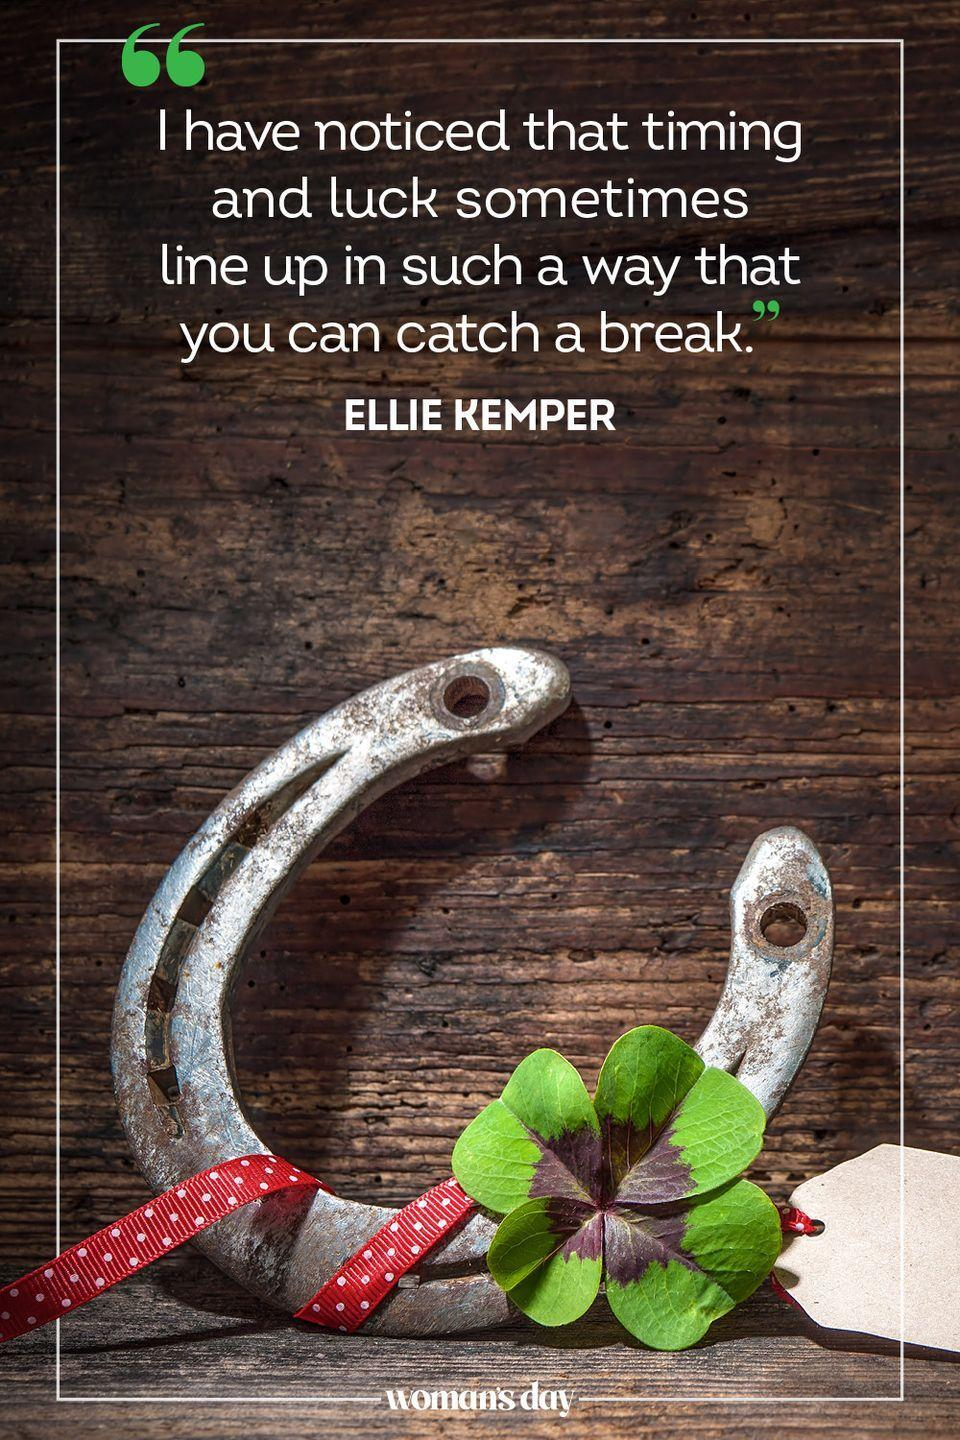 """<p>""""I have noticed that timing and luck sometimes line up in such a way that you can catch a break."""" — Ellie Kemper</p><p><strong>RELATED:</strong> <a href=""""https://www.womansday.com/life/a4698/unique-ways-to-celebrate-st-patricks-day-104555/"""" rel=""""nofollow noopener"""" target=""""_blank"""" data-ylk=""""slk:25 Fun St. Patrick's Day Activities"""" class=""""link rapid-noclick-resp"""">25 Fun St. Patrick's Day Activities</a></p>"""